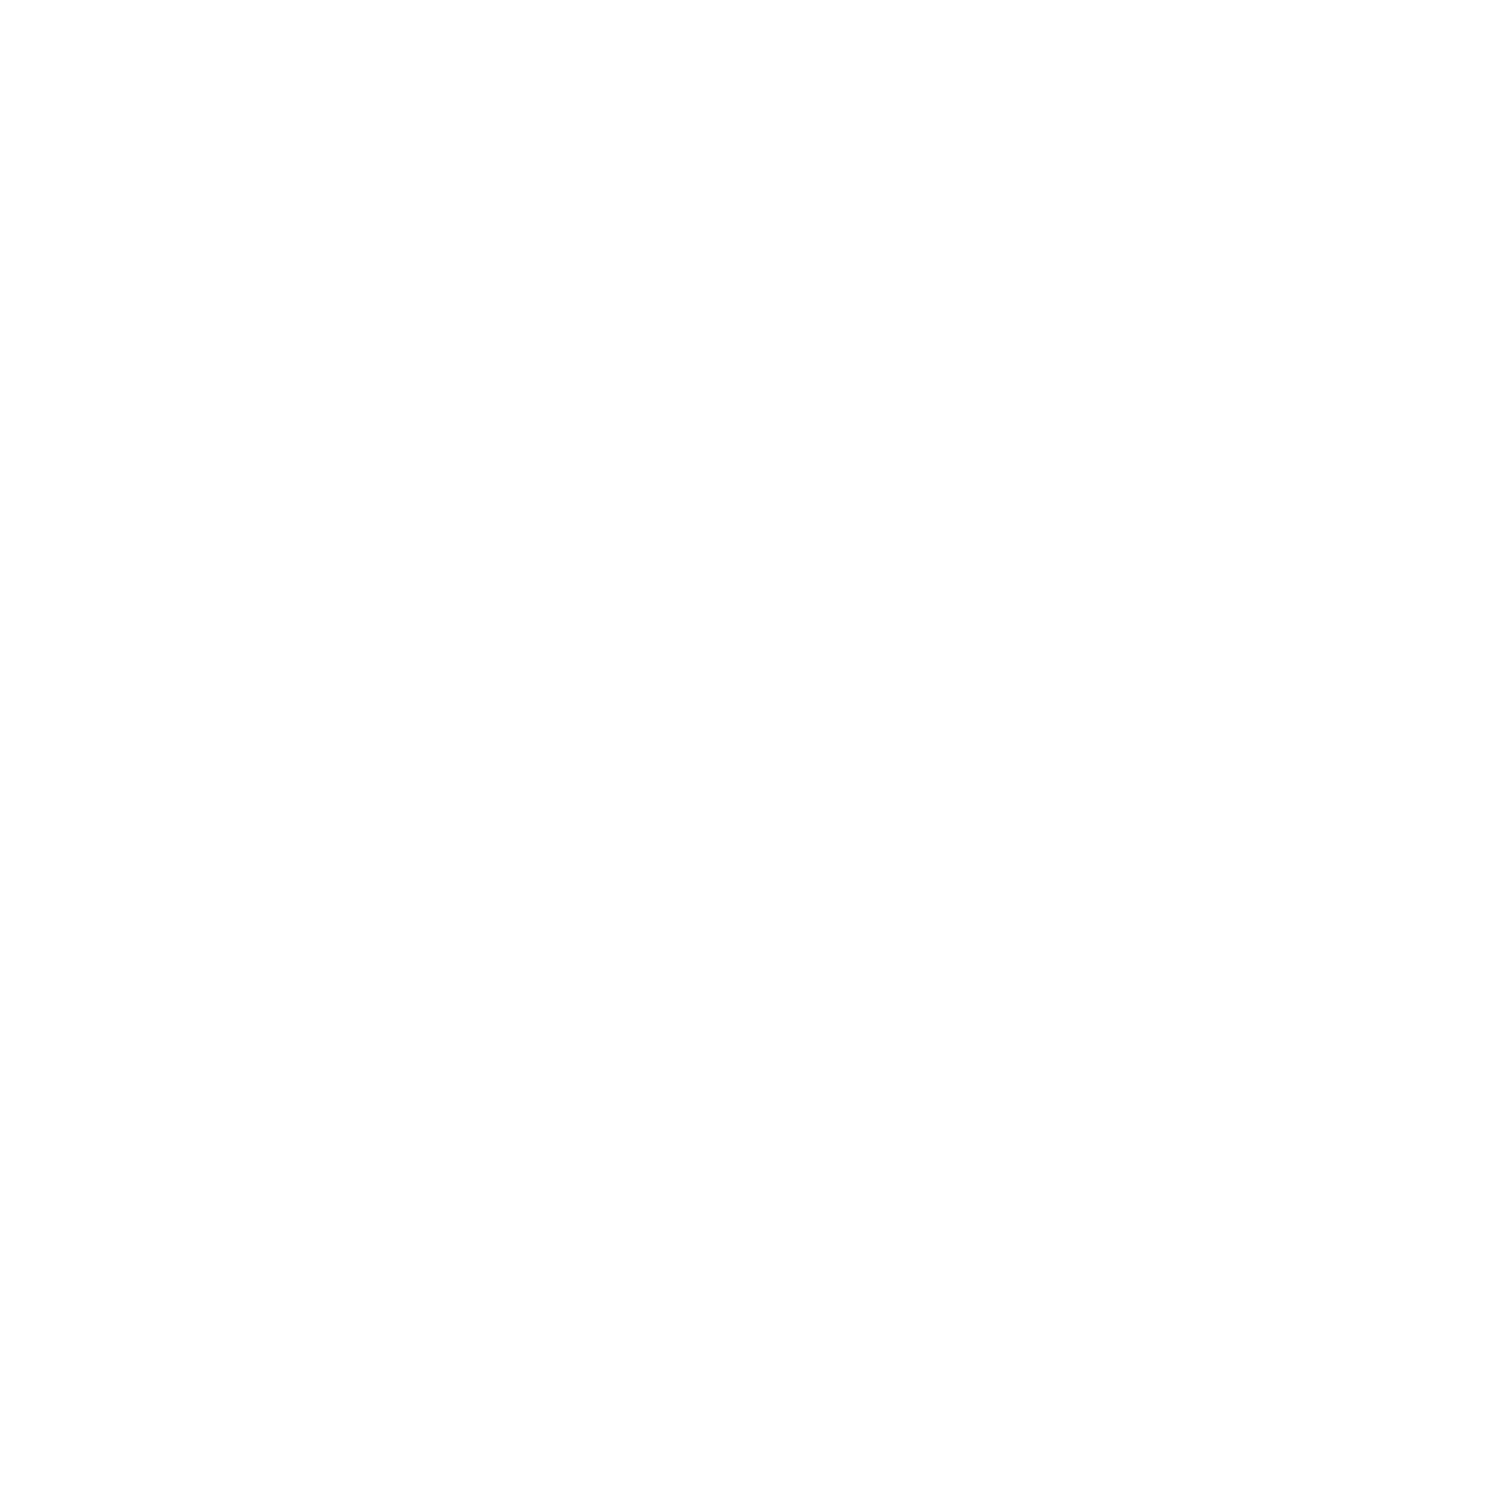 Geodetic Surveys & Engineering